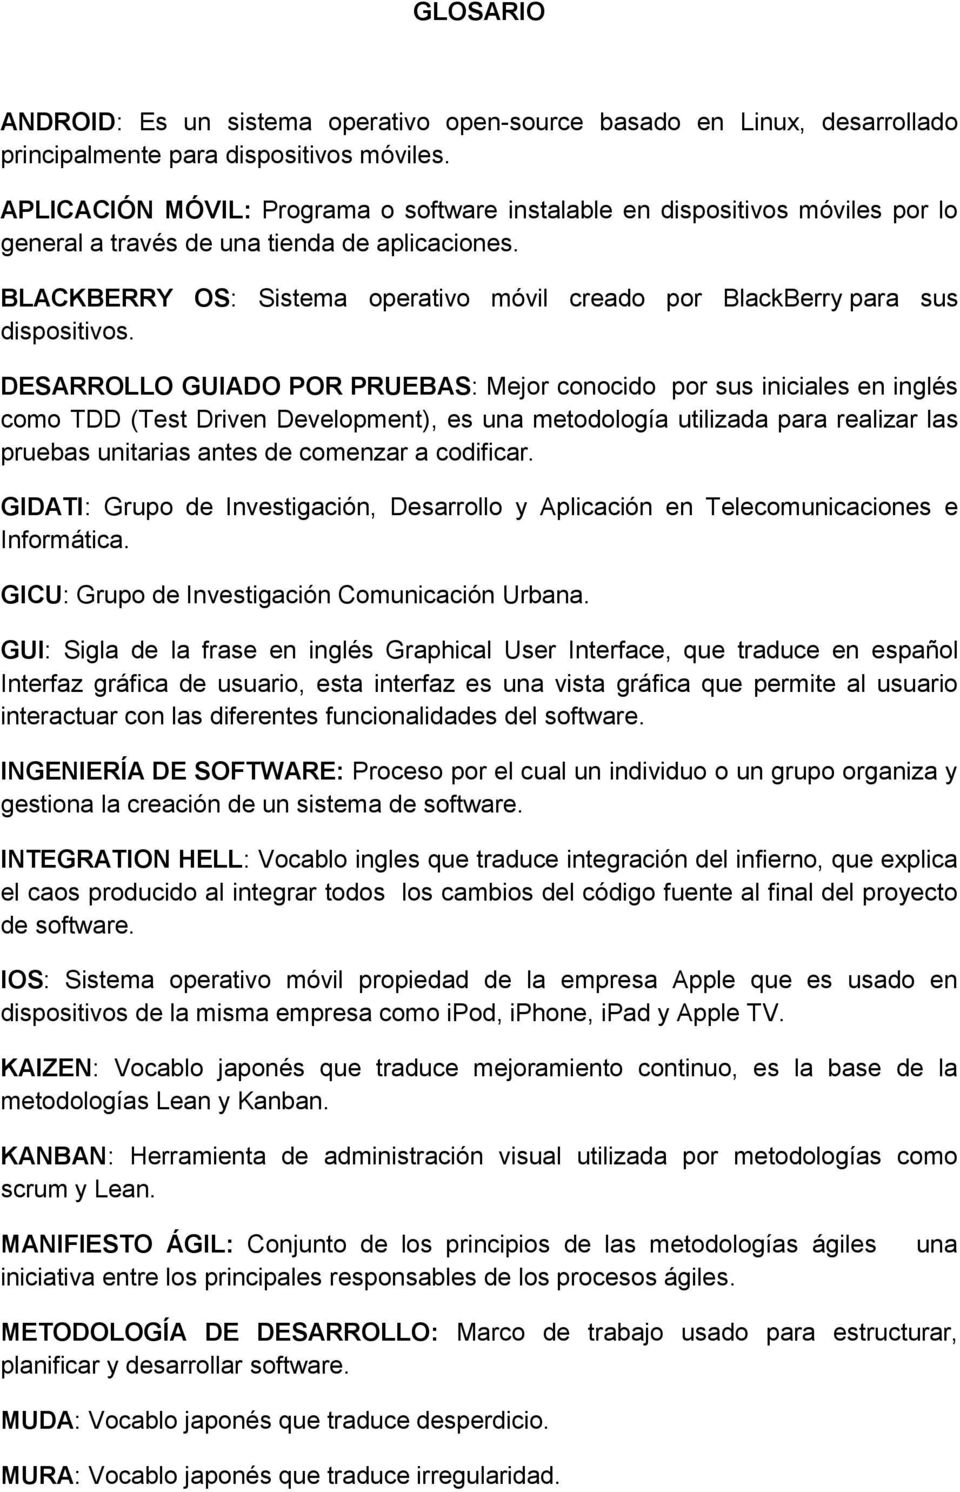 BLACKBERRY OS: Sistema operativo móvil creado por BlackBerry para sus dispositivos.